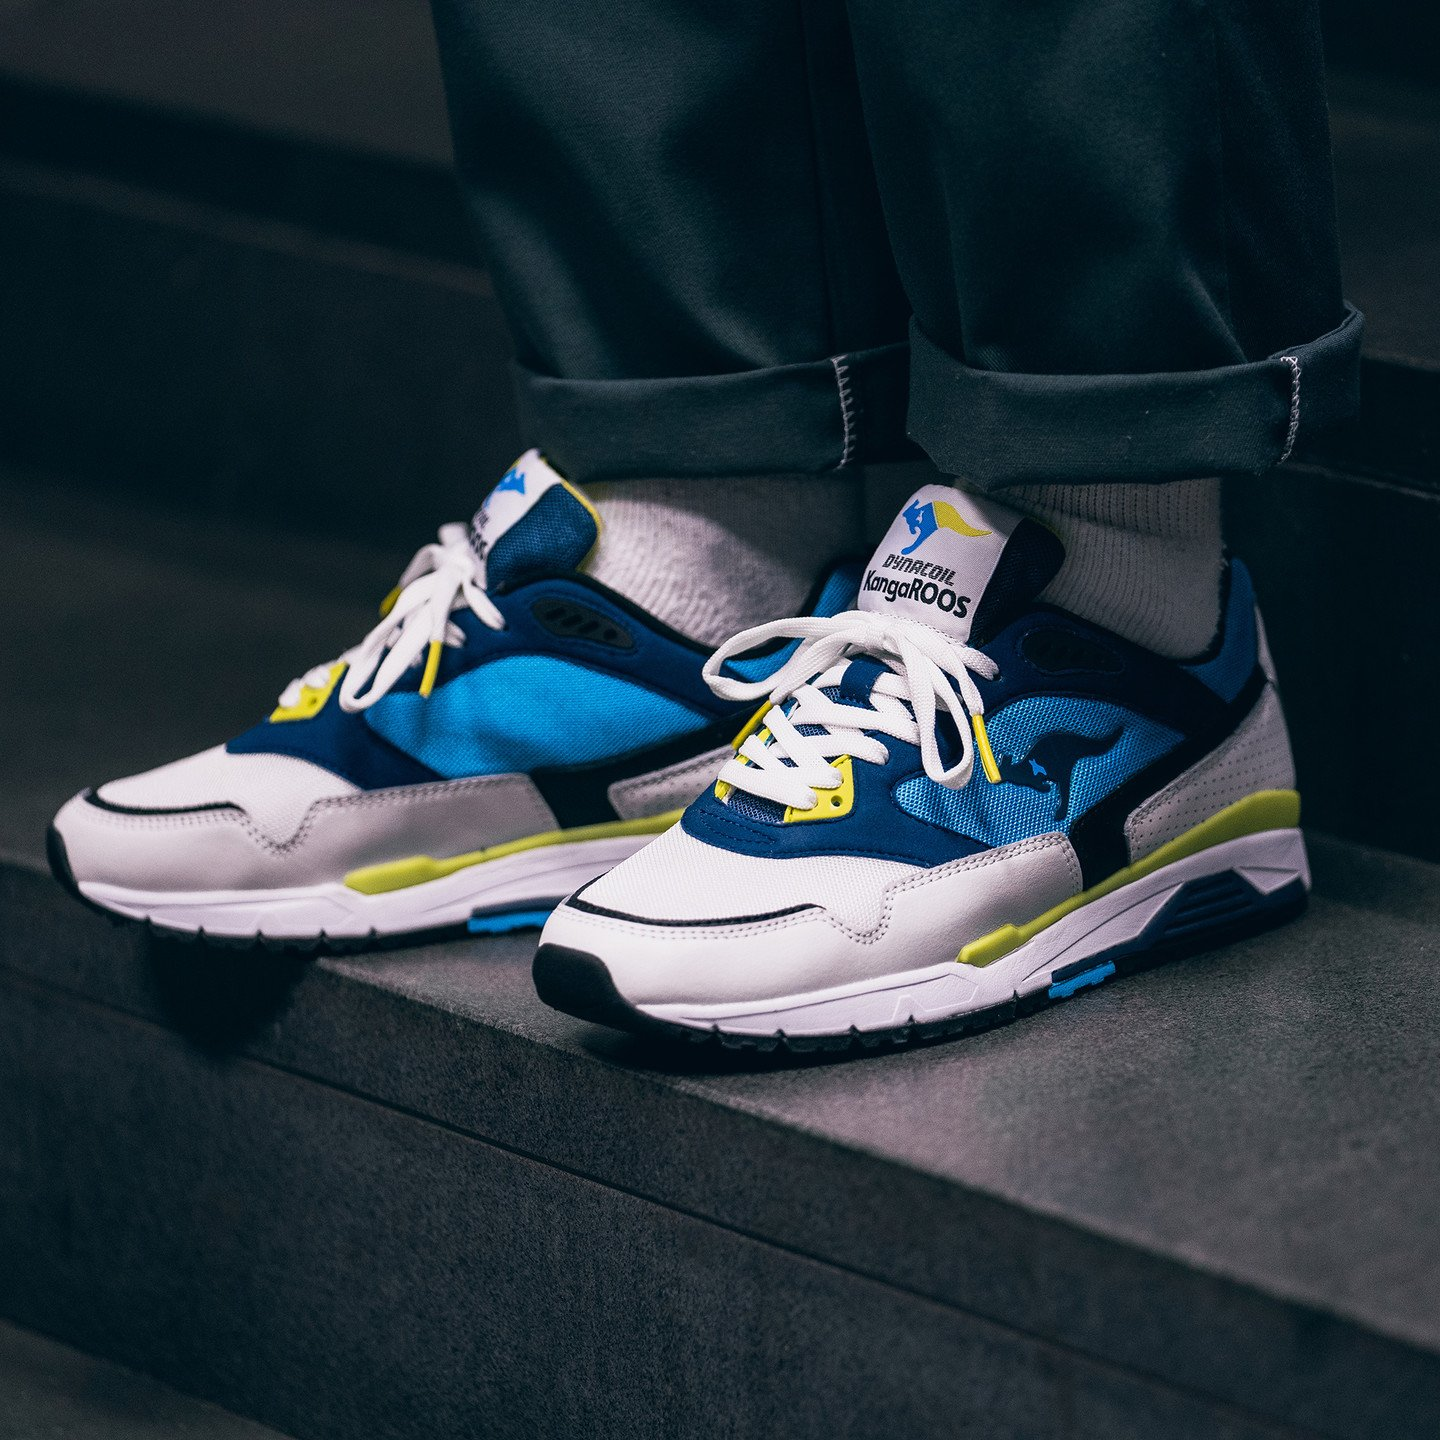 KangaROOS Ultimate OG White / Navy / Blue / Volt 47254-0025